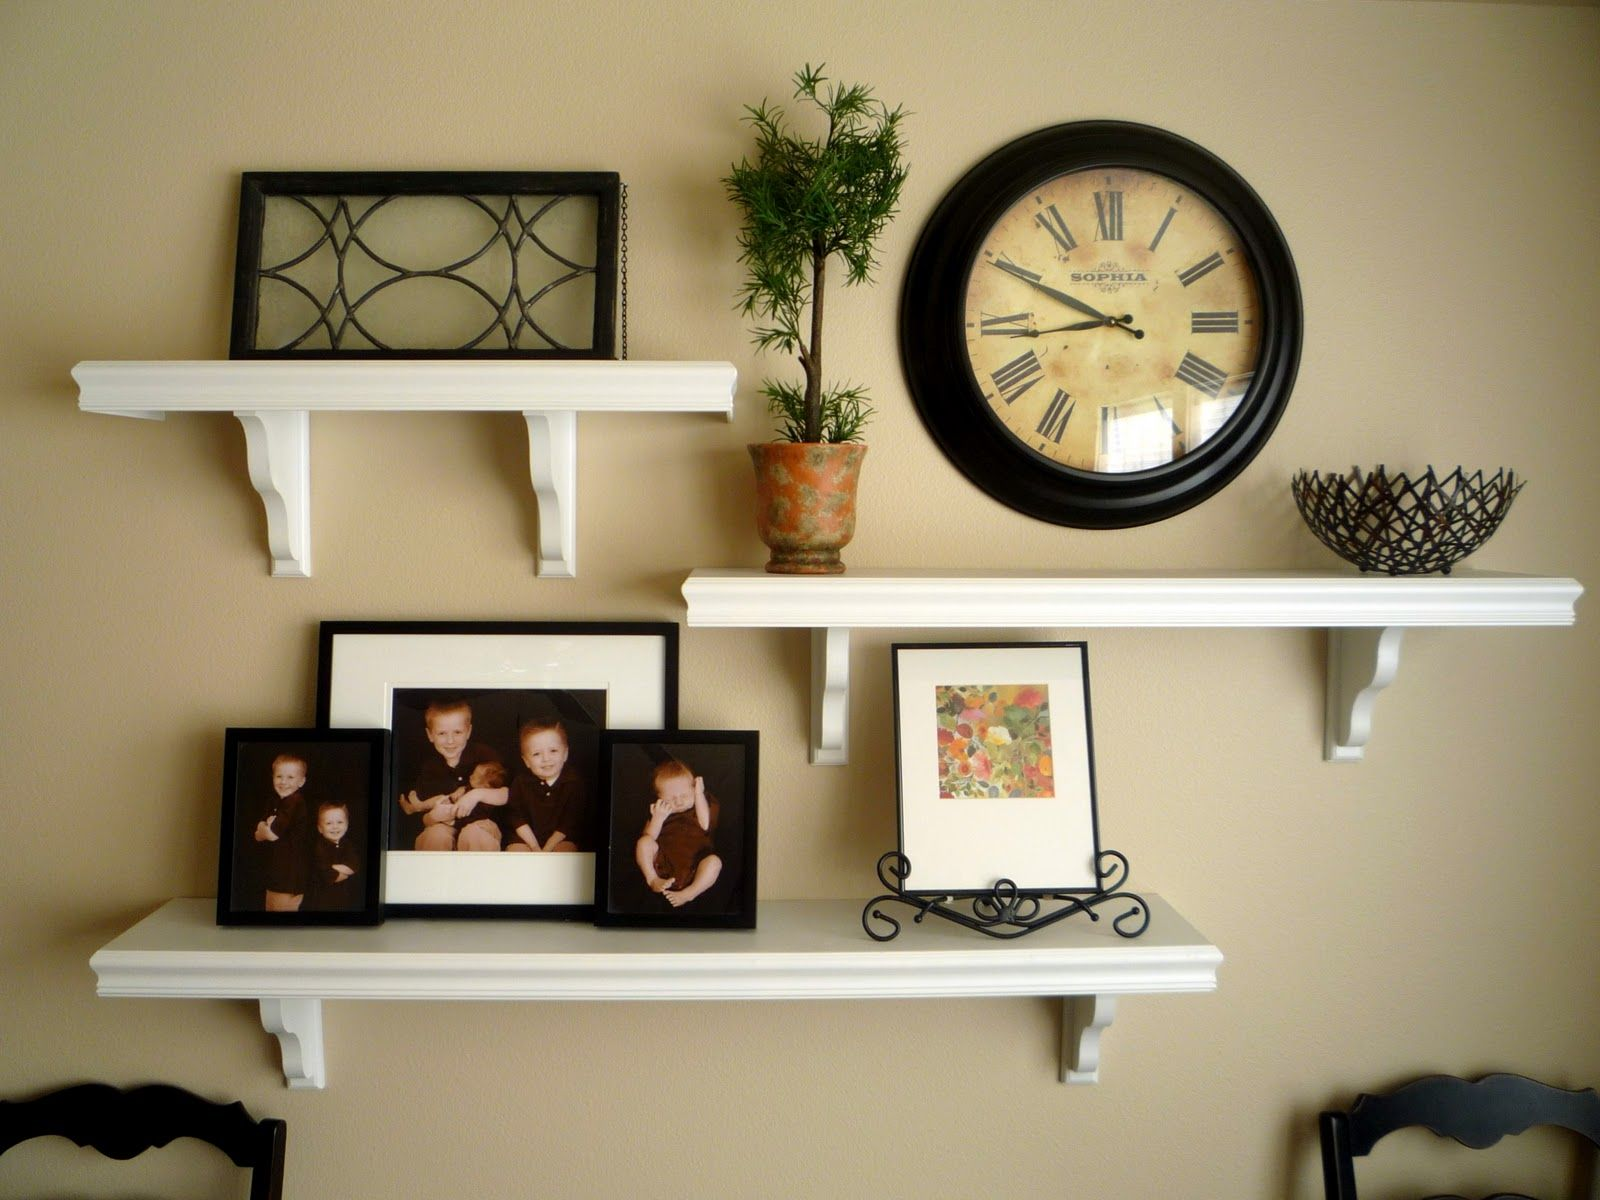 Stylish Diy Floating Shelves & Wall Easy Home